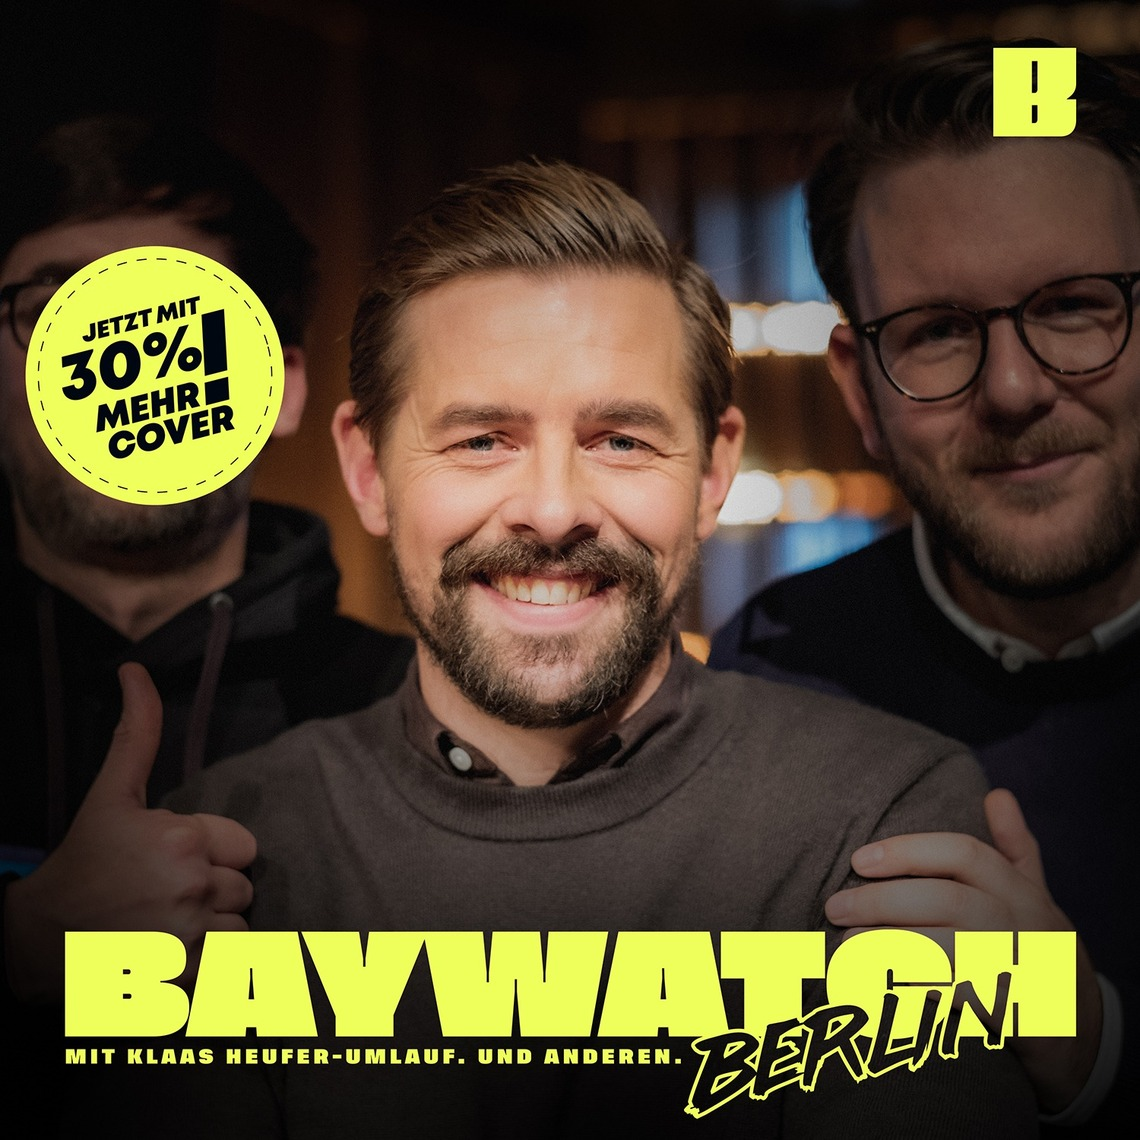 Baywatch Berlin | Scribd